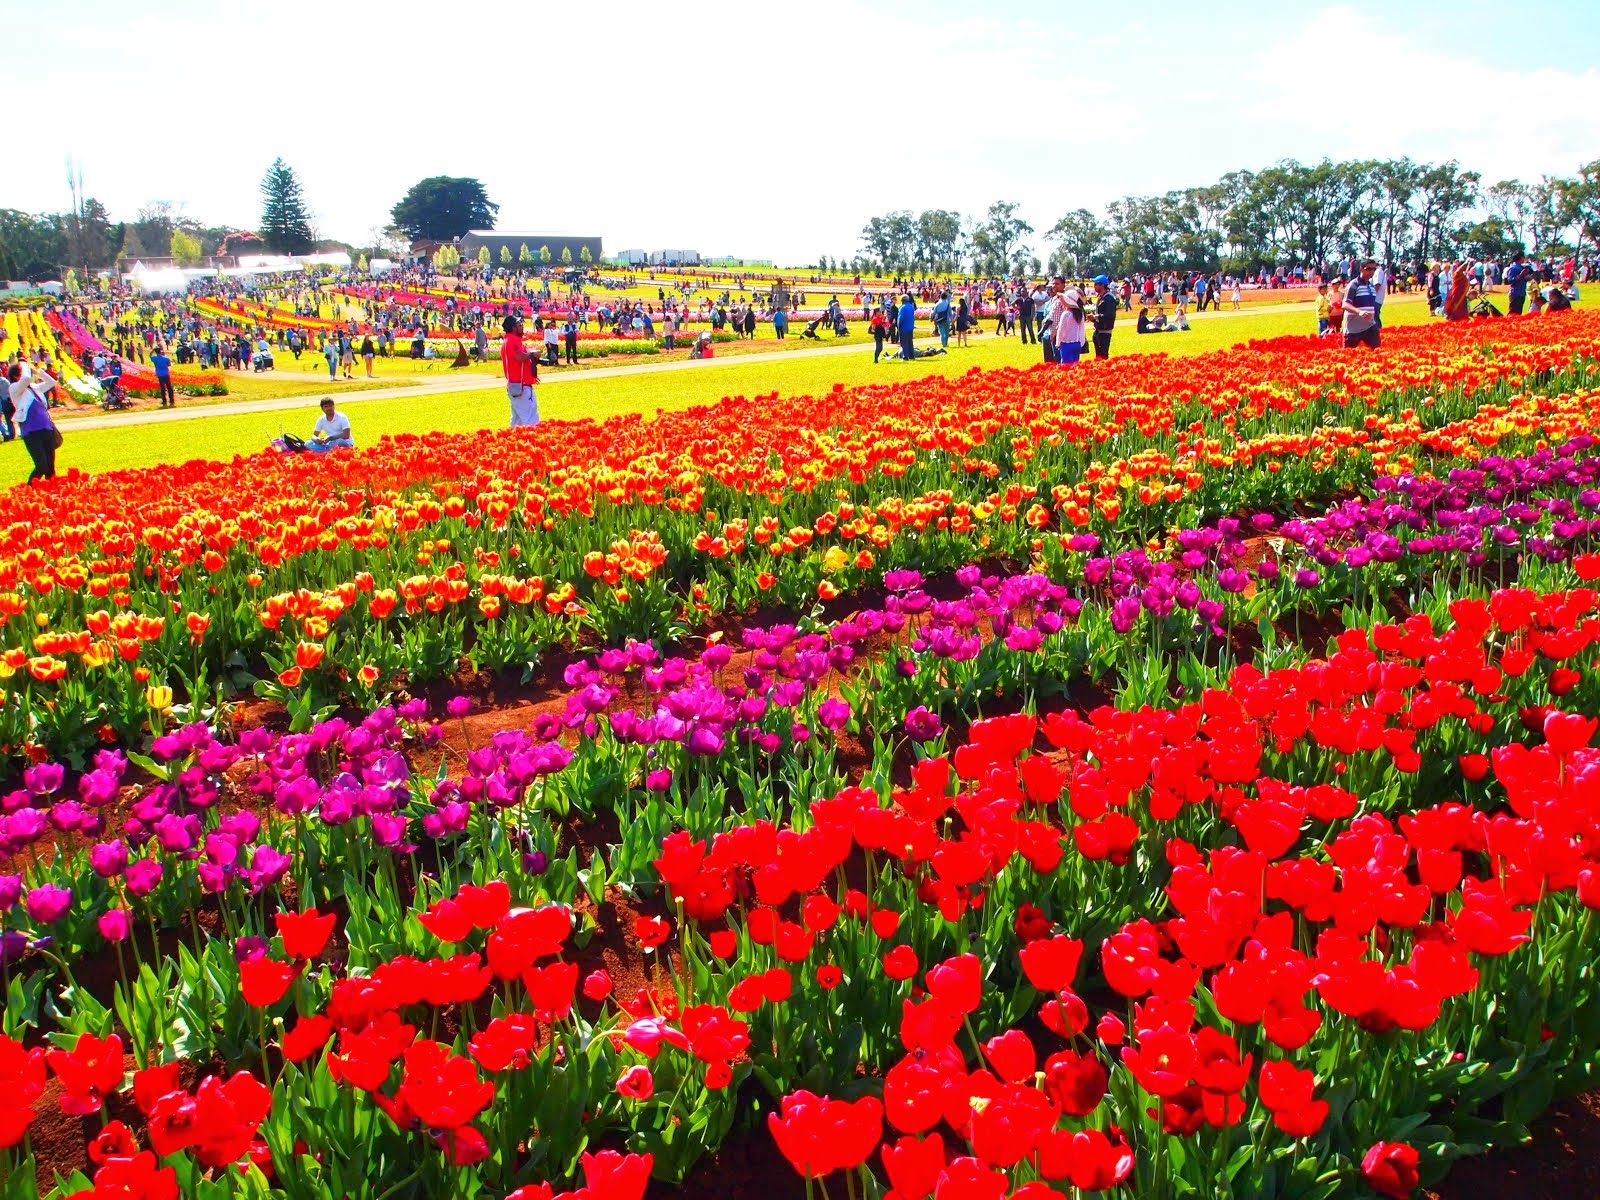 Tesselaar Tulip Festival - showcasing thousands of colorful tulips.